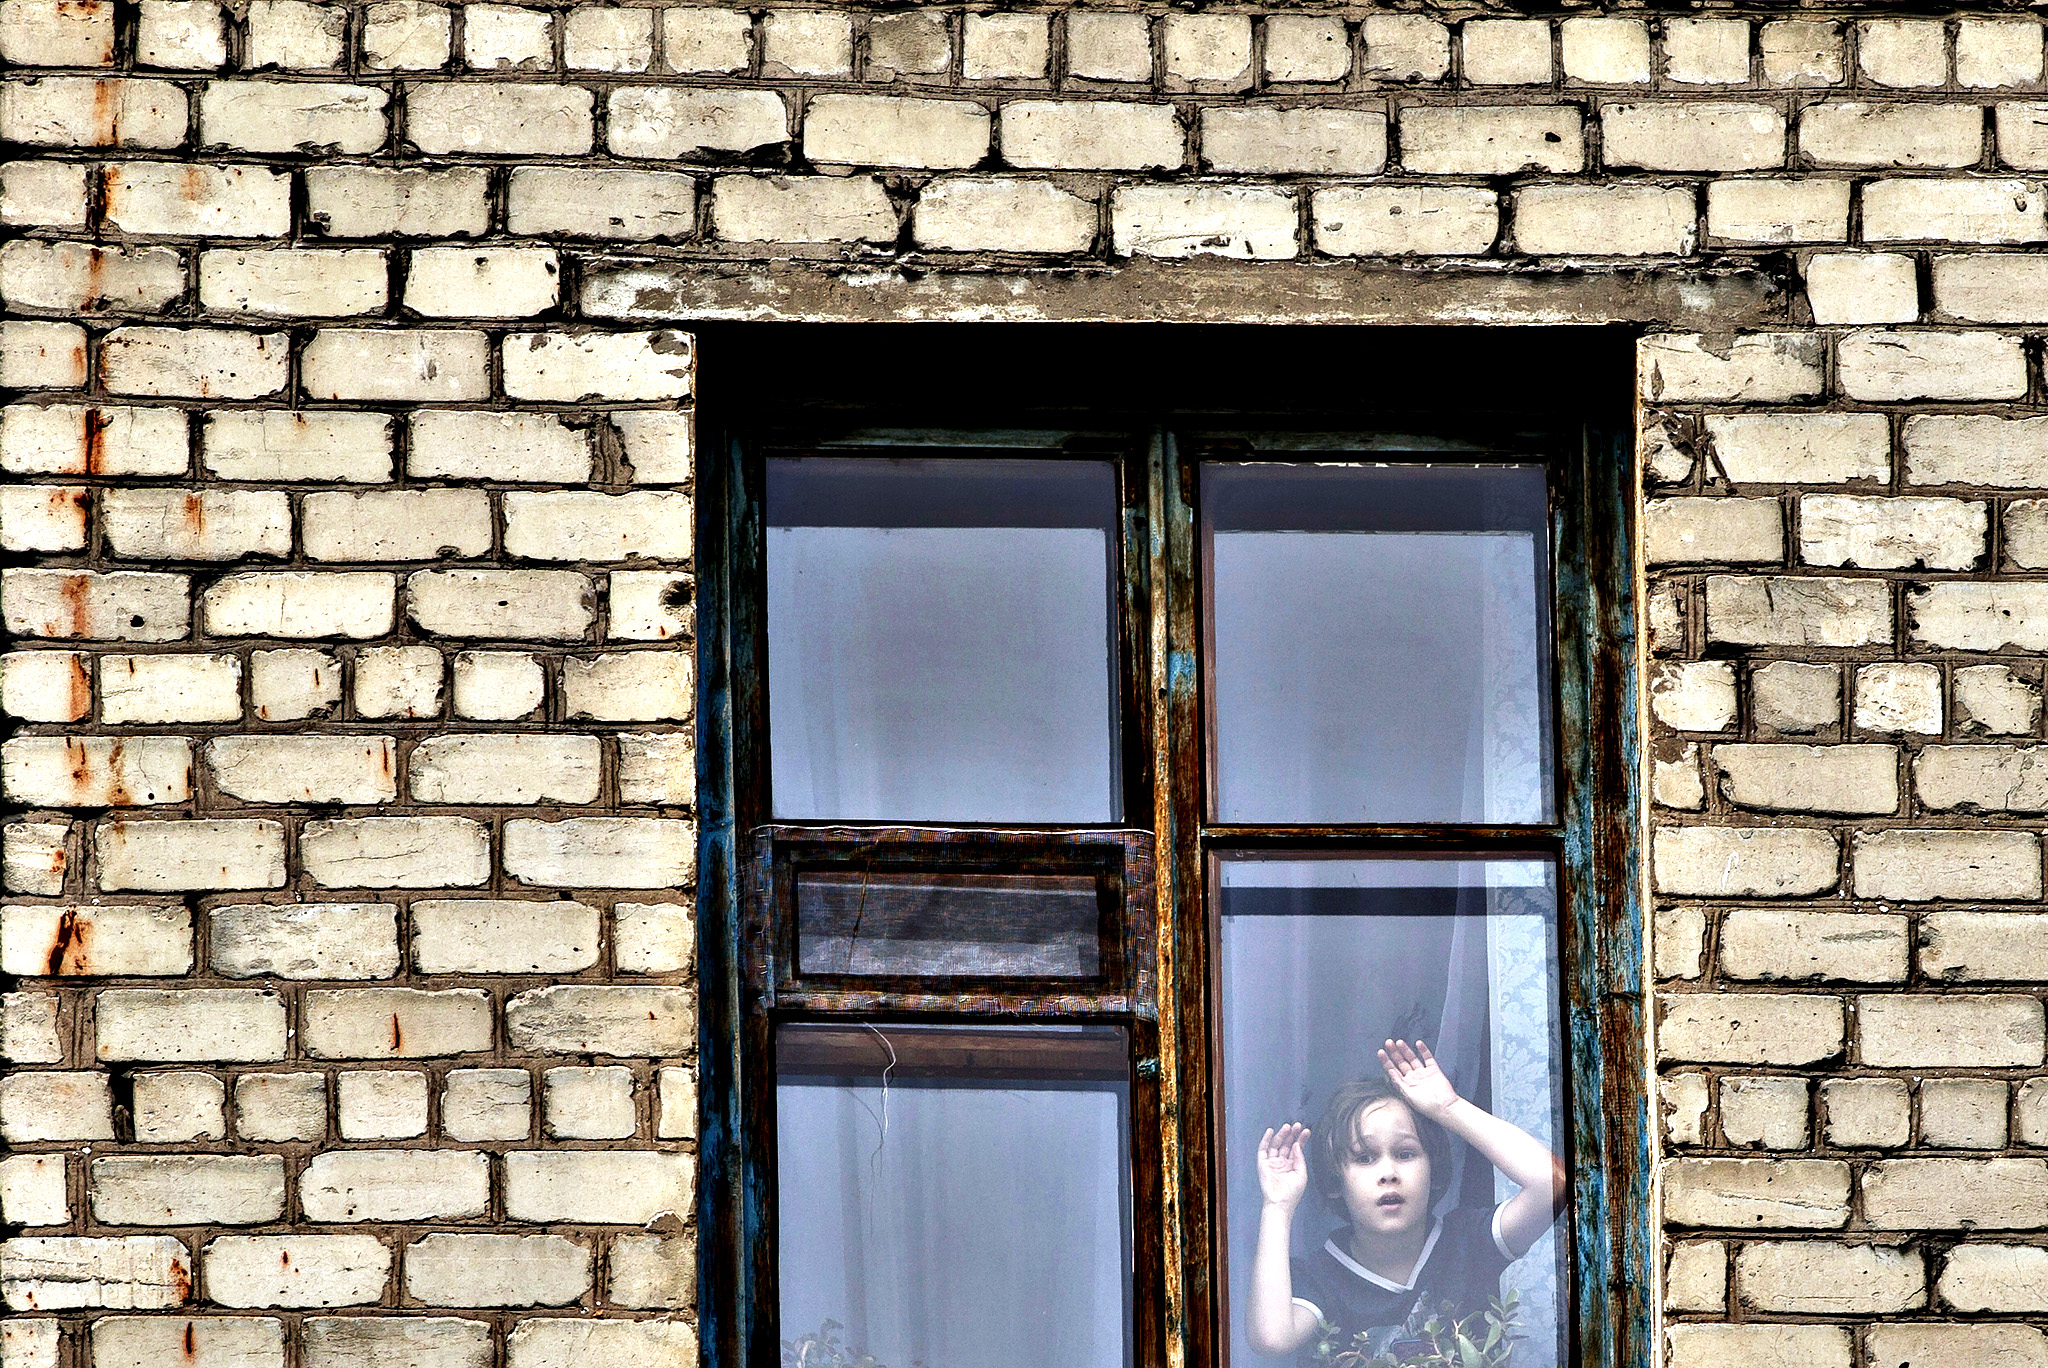 A child leans against a window as he looks at Ukrainian miners marching in support of the Donetsk People's Republic in Lenin square, Donetsk, Ukraine, Wednesday, May 28, 2014. Miners who, according to local media, have declared an open ended strike, protested against recent actions by Ukraine's military against rebels who tried to take control of the Donetsk airport Monday but were repelled by Ukrainian forces using combat jets and helicopter gunships in clashes that killed up to 100 rebel fighters. Banner reads Fascists will not pass in reference to the Ukrainian government forces.